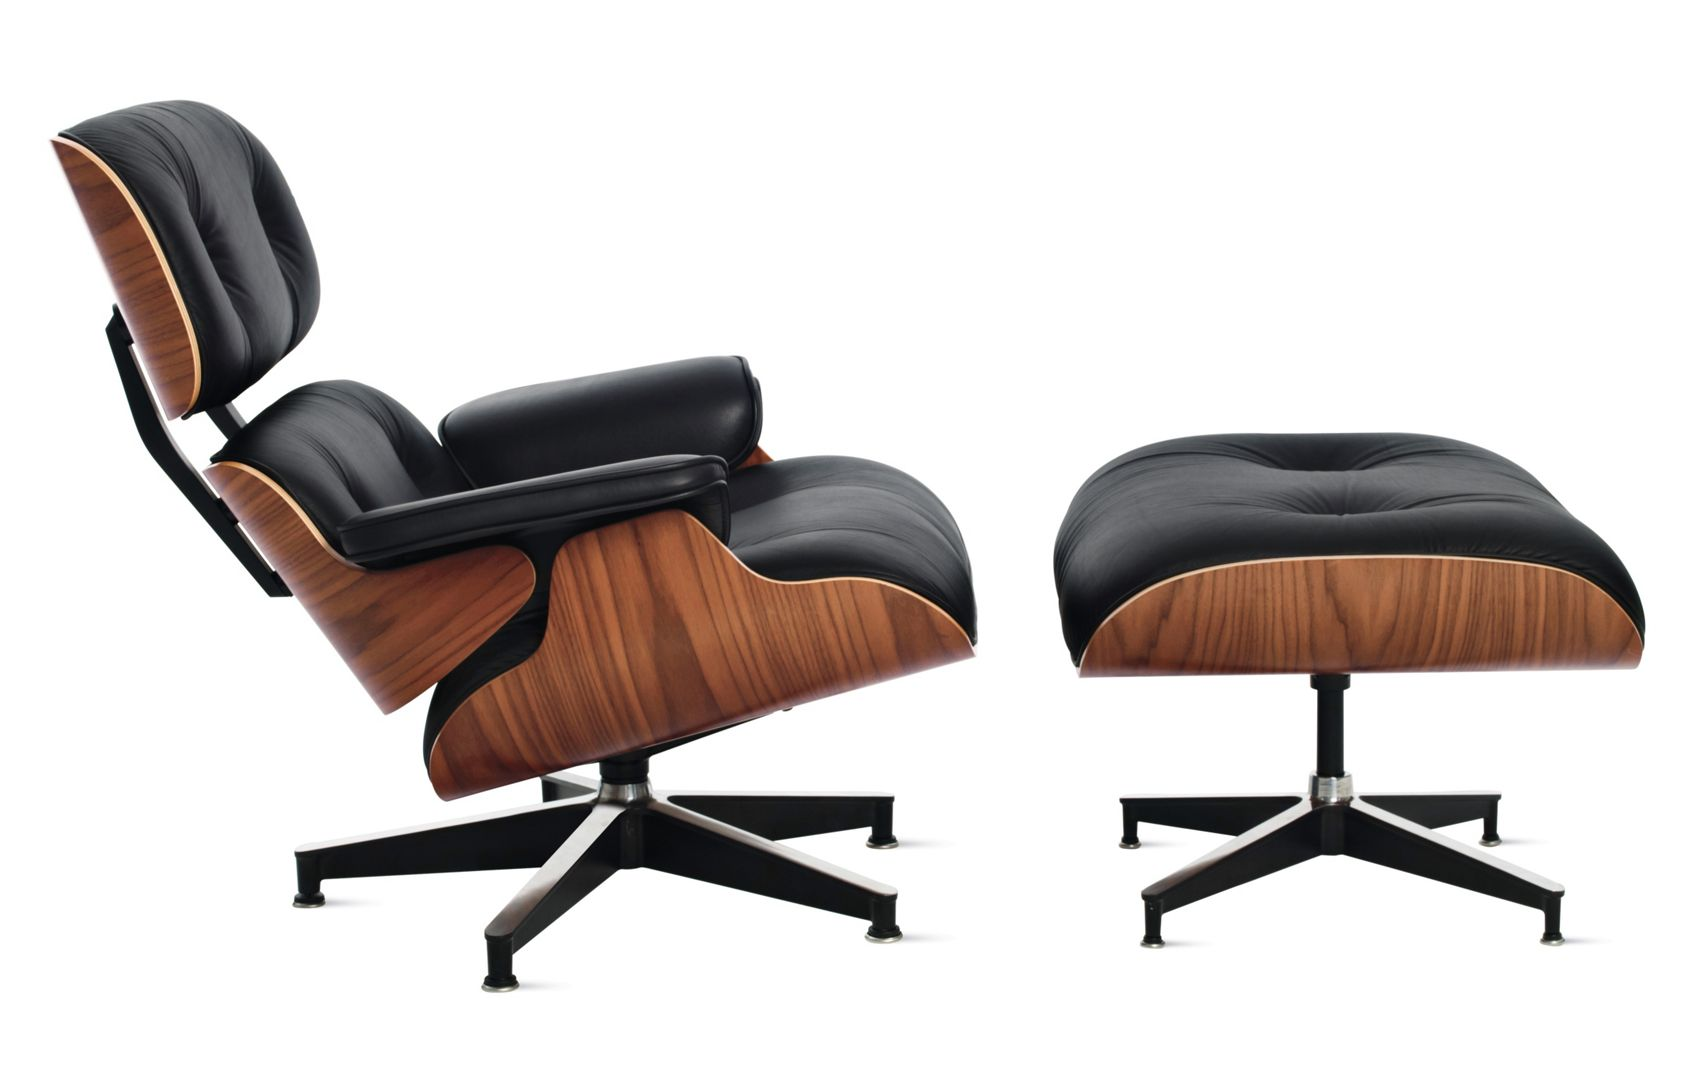 Eames Lounger:  http://westernliving.ca/shopping/march-madness-eames-lounger-vs-barcelona-chair/